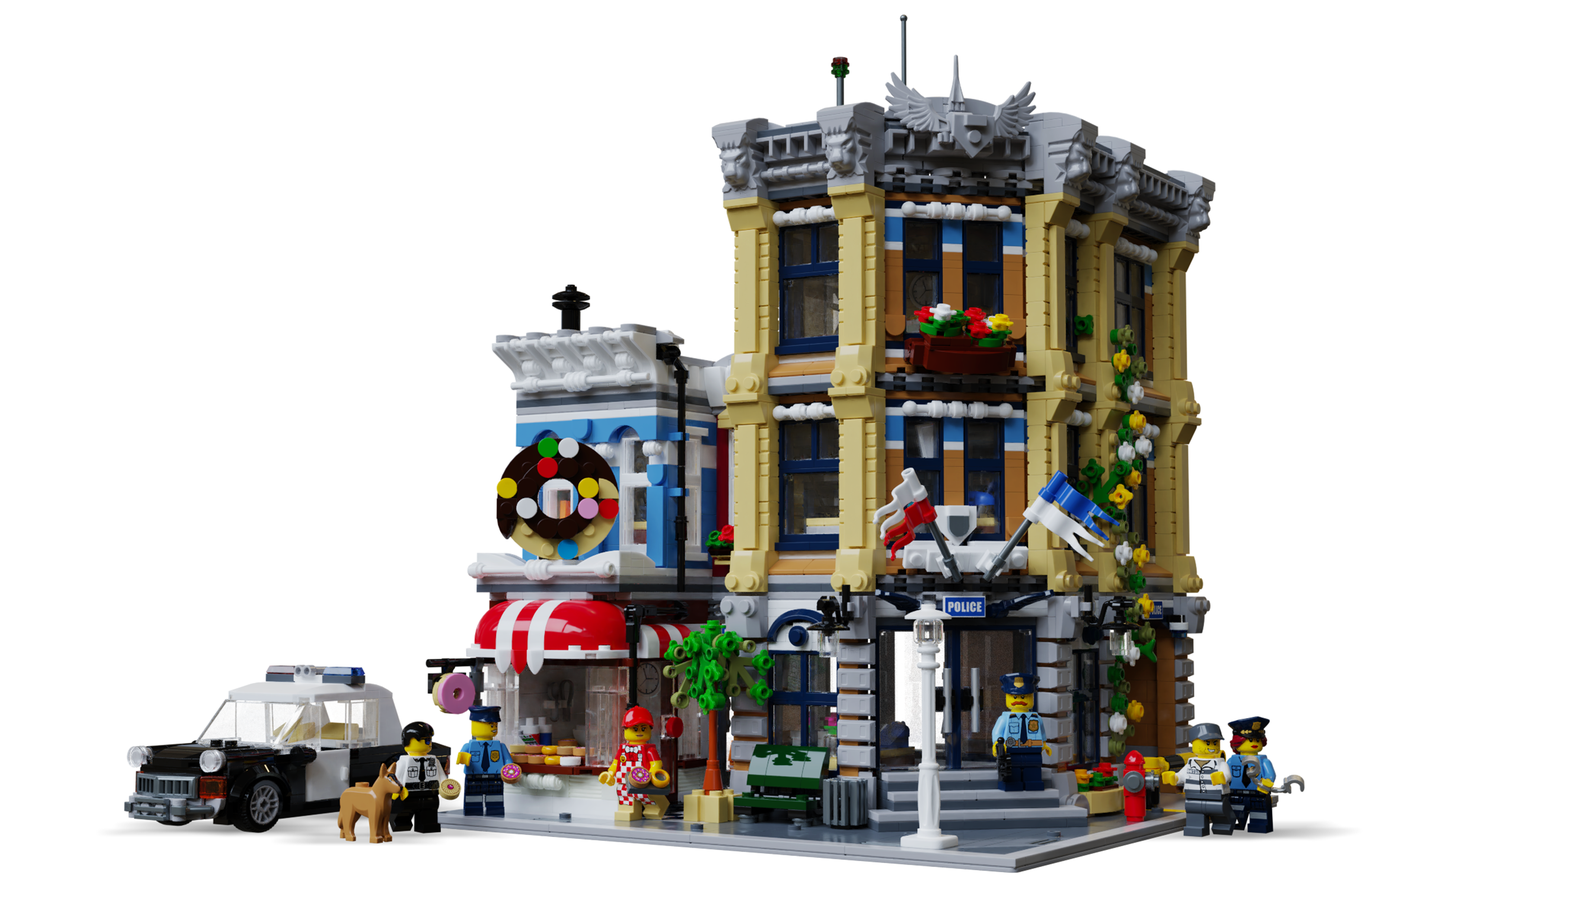 LEGO Ideas Brick Town Police Station